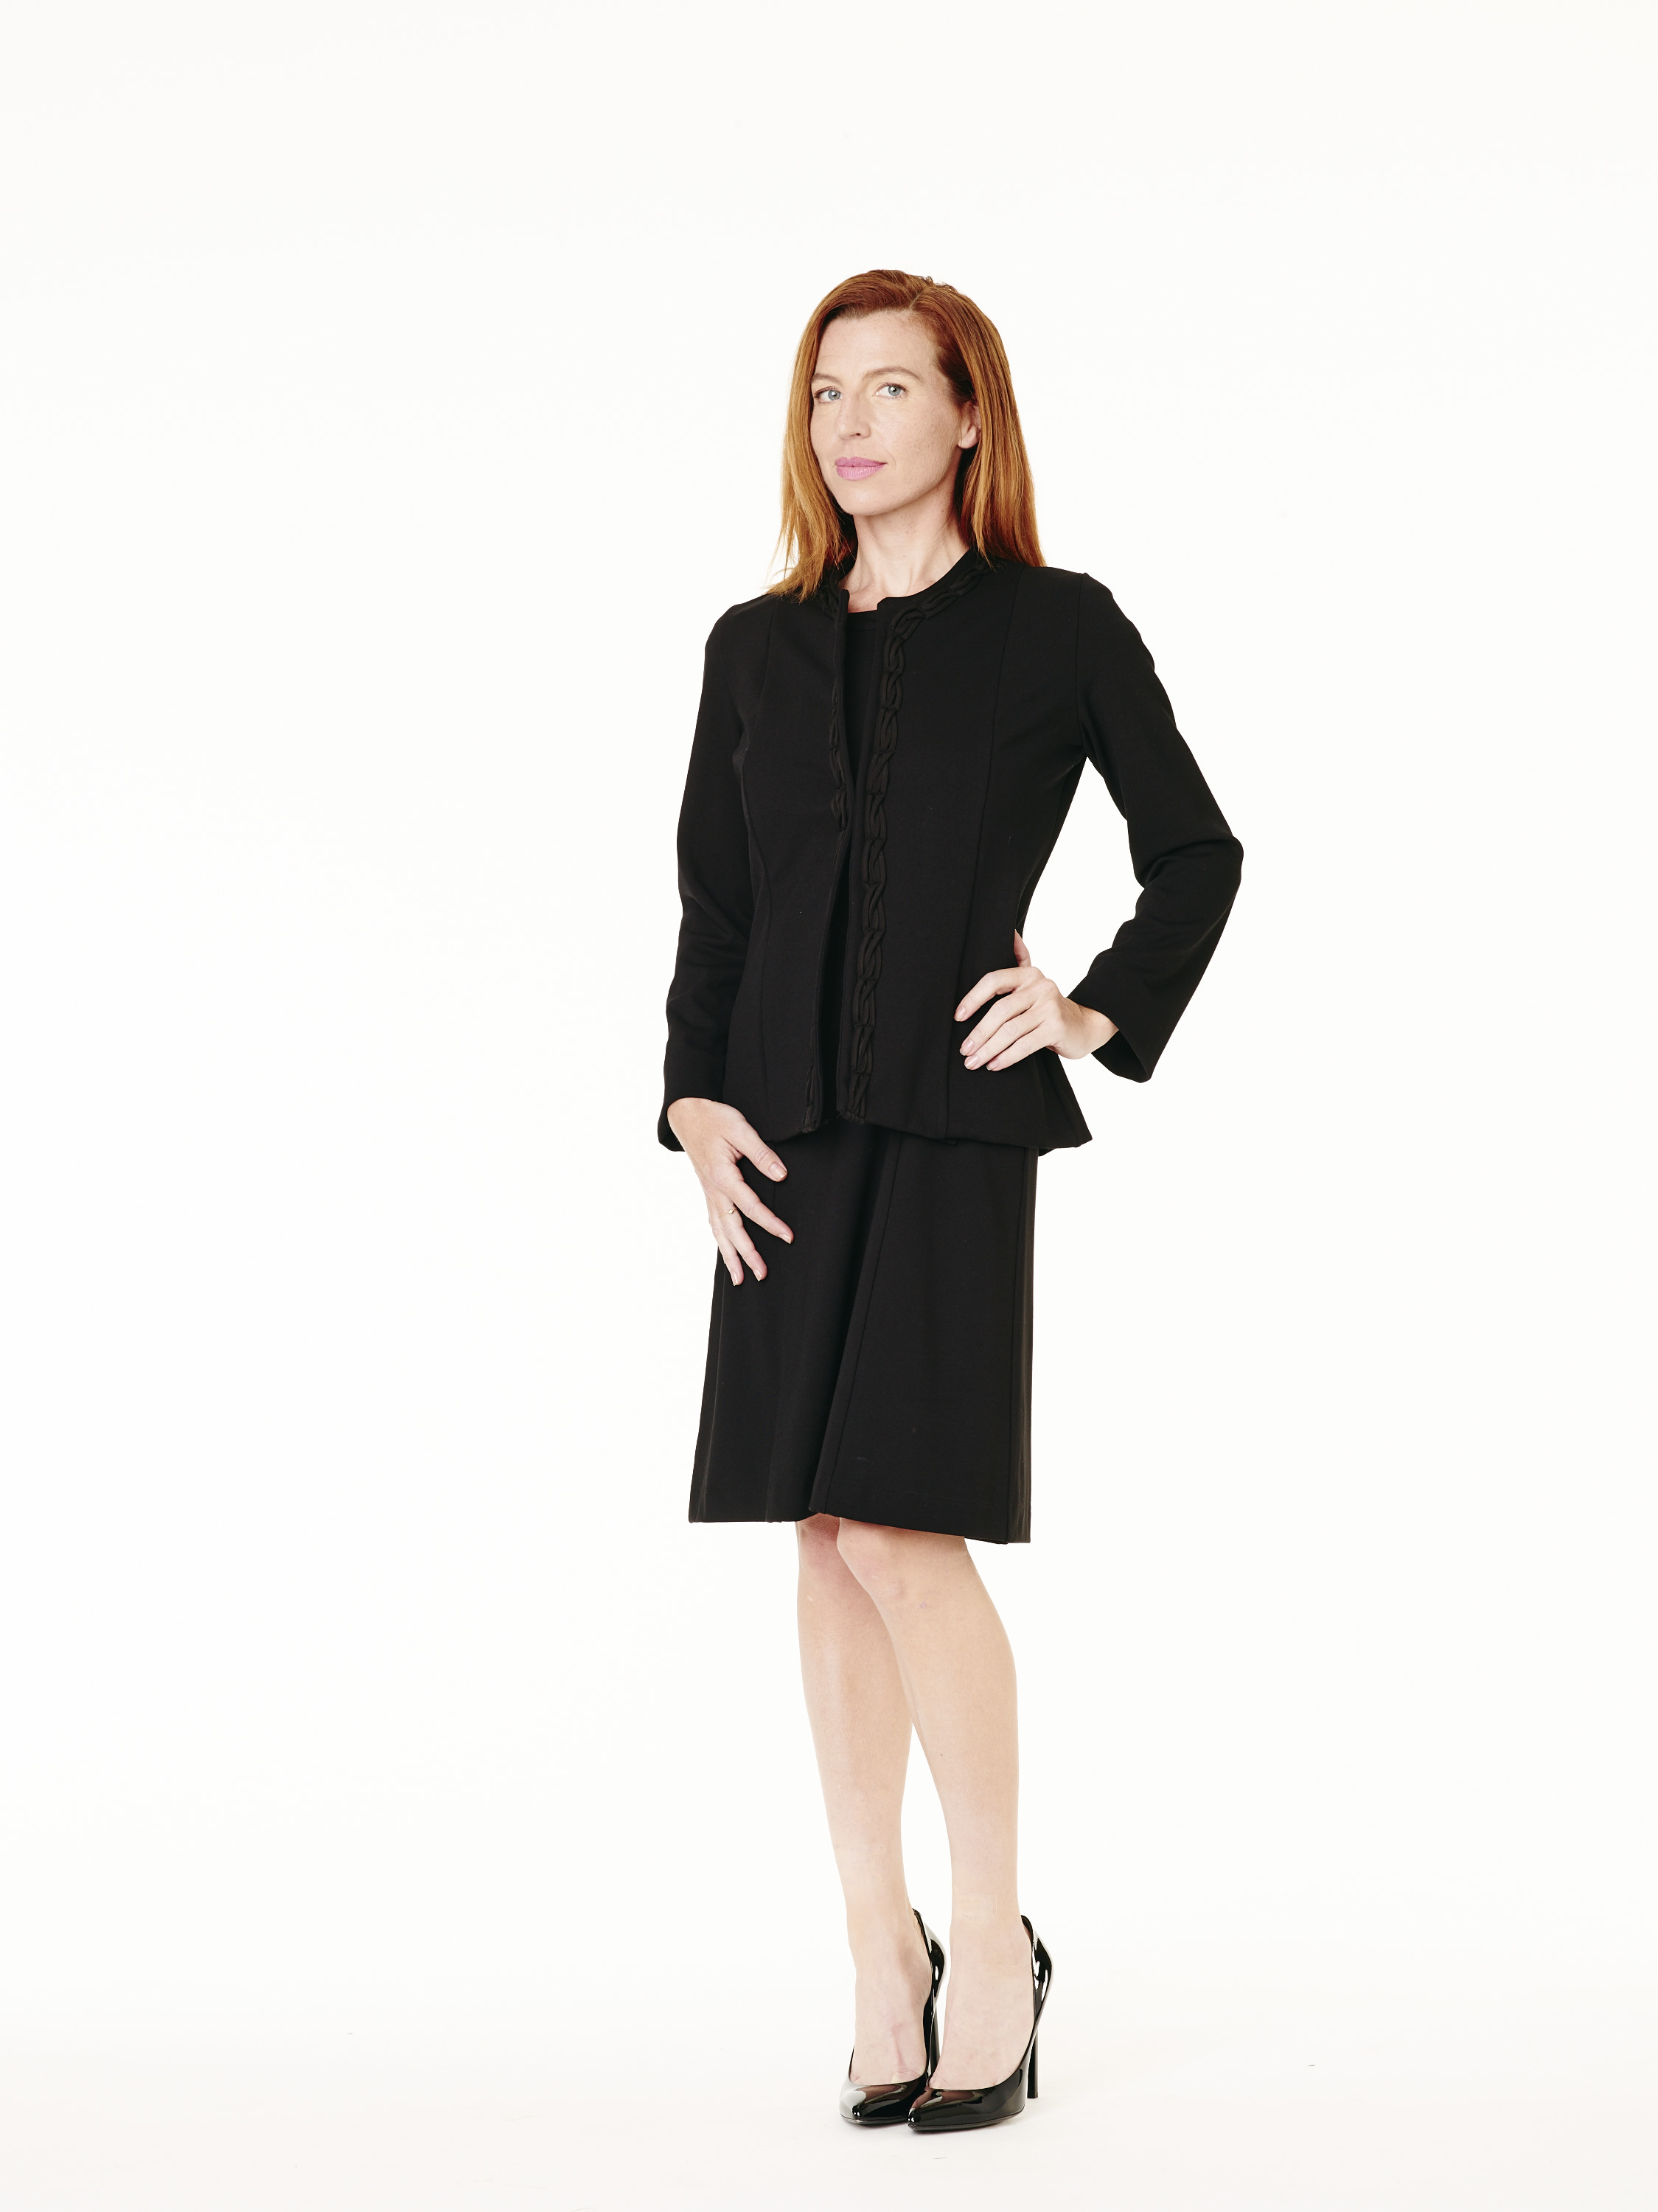 Camilla Olson 2-11-15 01_Gaby_Jacket_Cage_Dress_0019.jpg